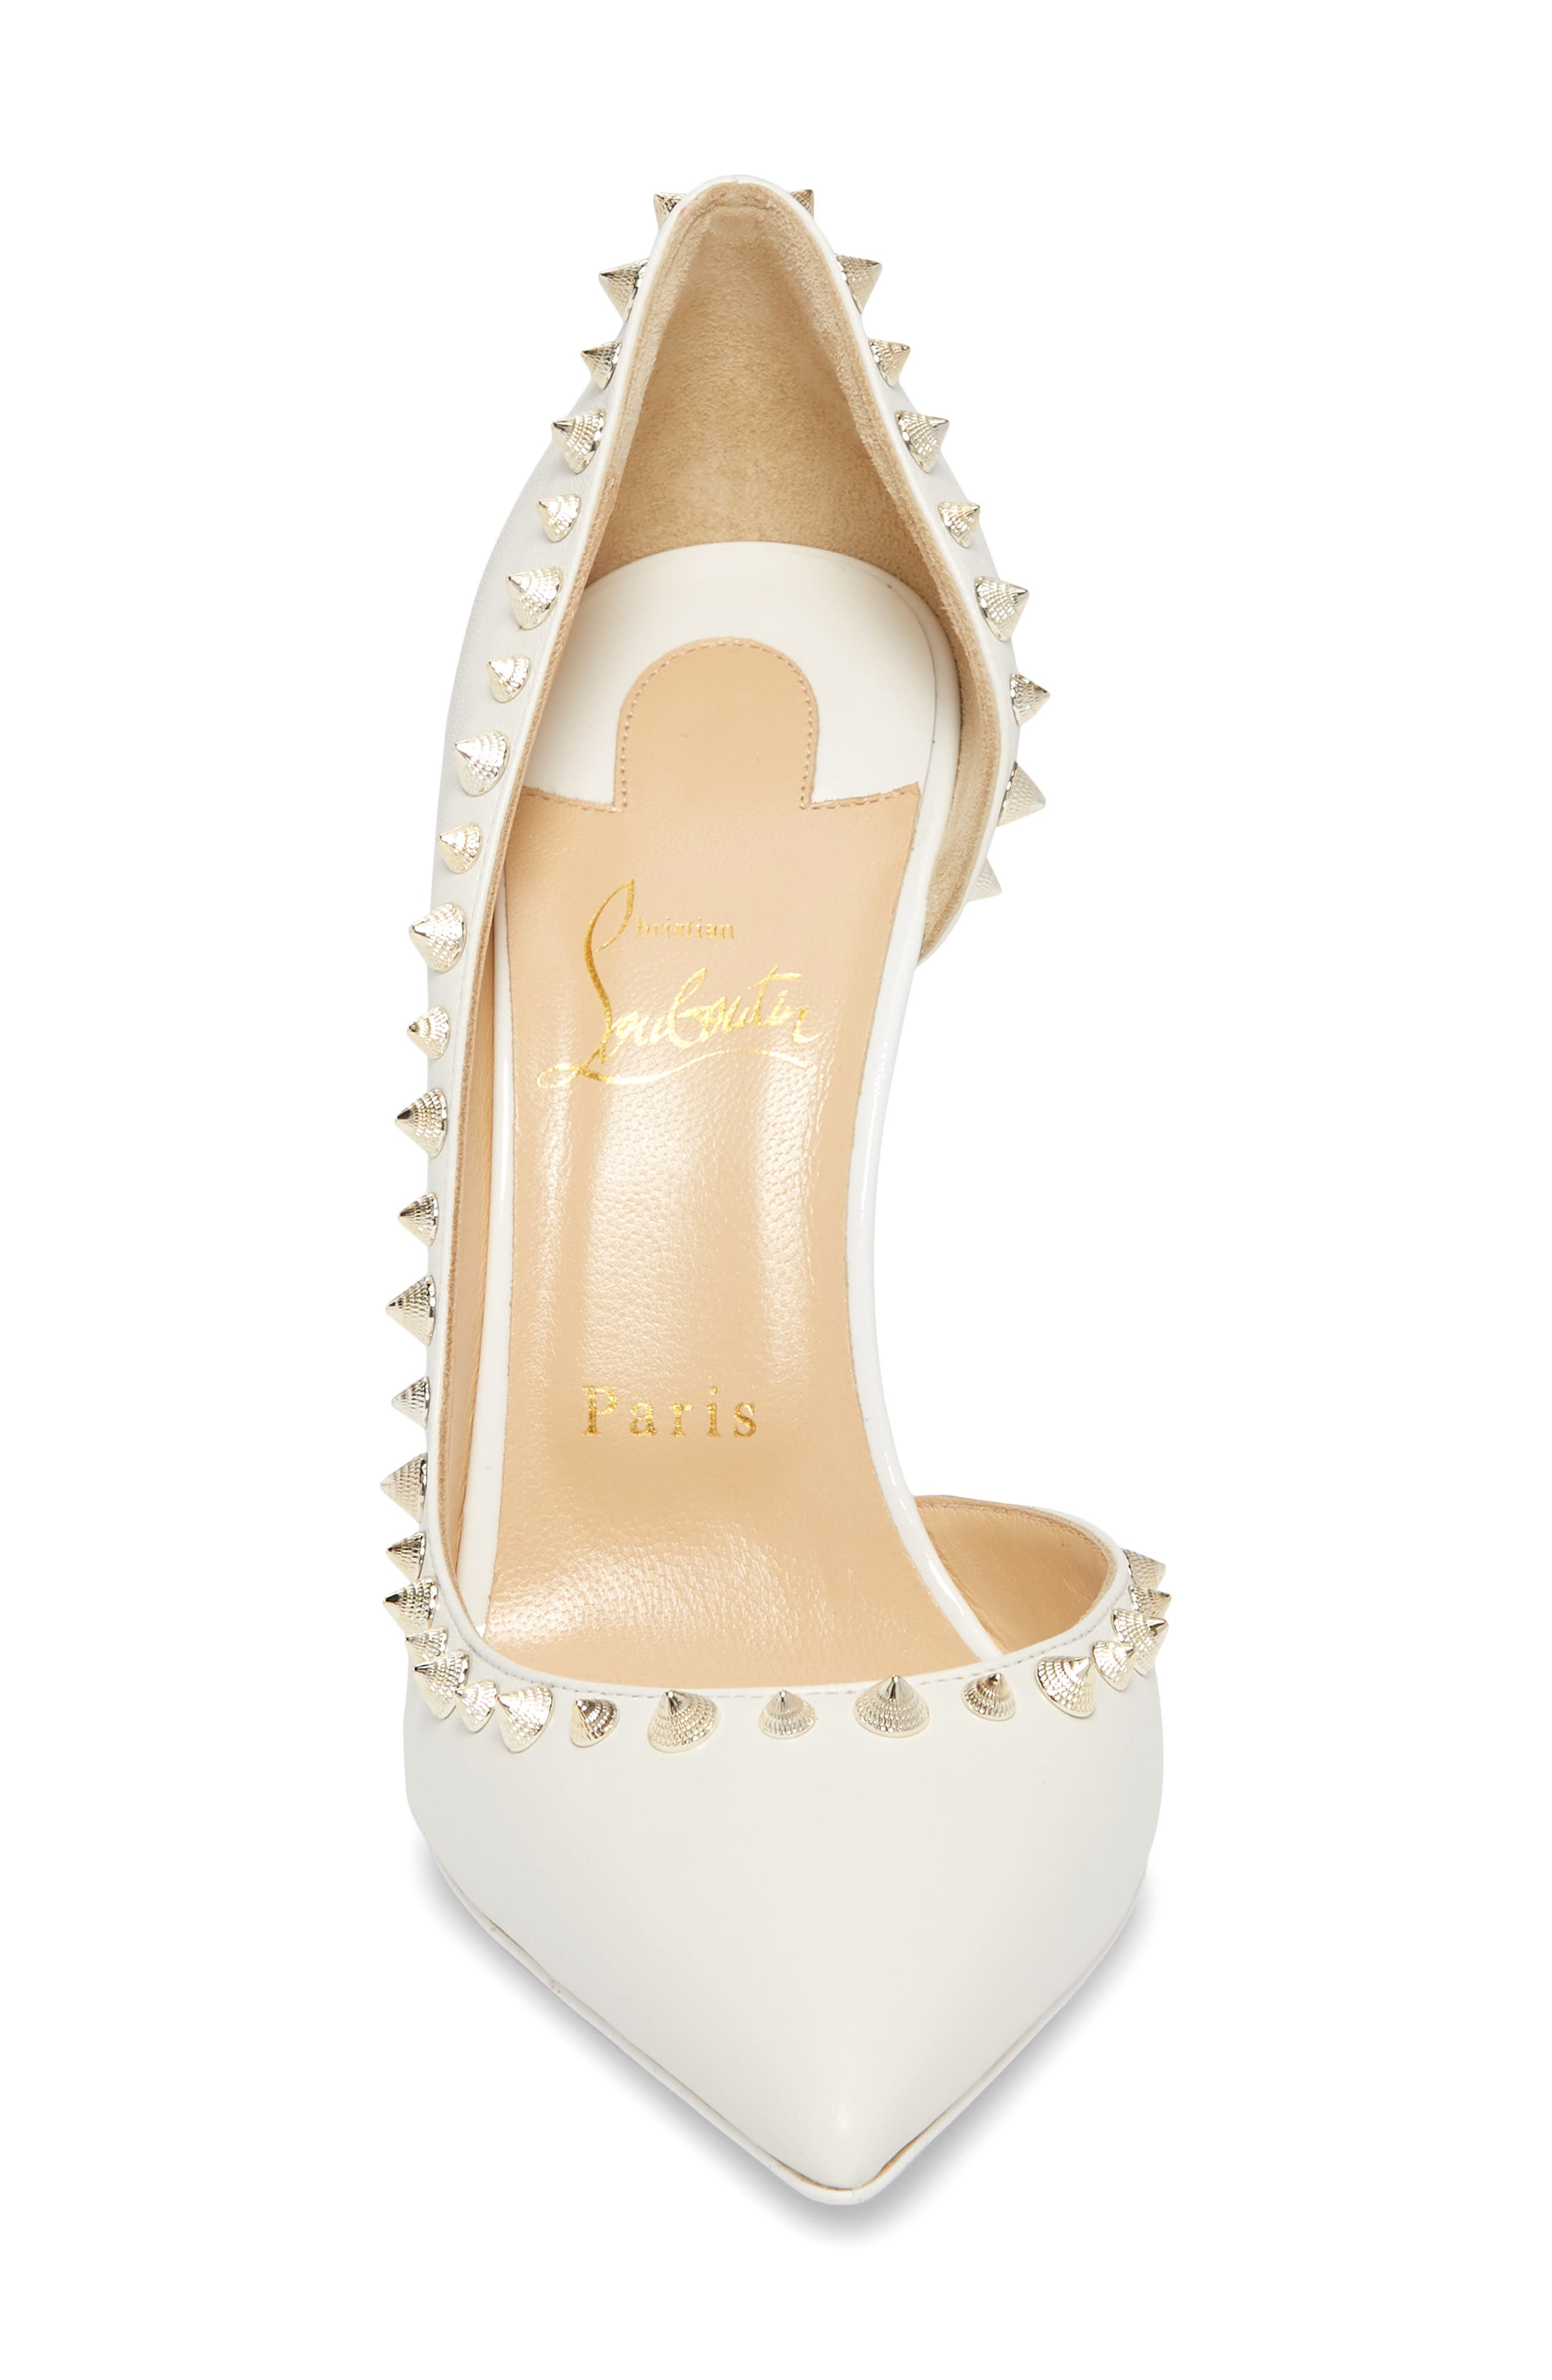 Irishell Spiked Half d'Orsay Pump,                             Alternate thumbnail 4, color,                             LATTE/ WHITE GOLD